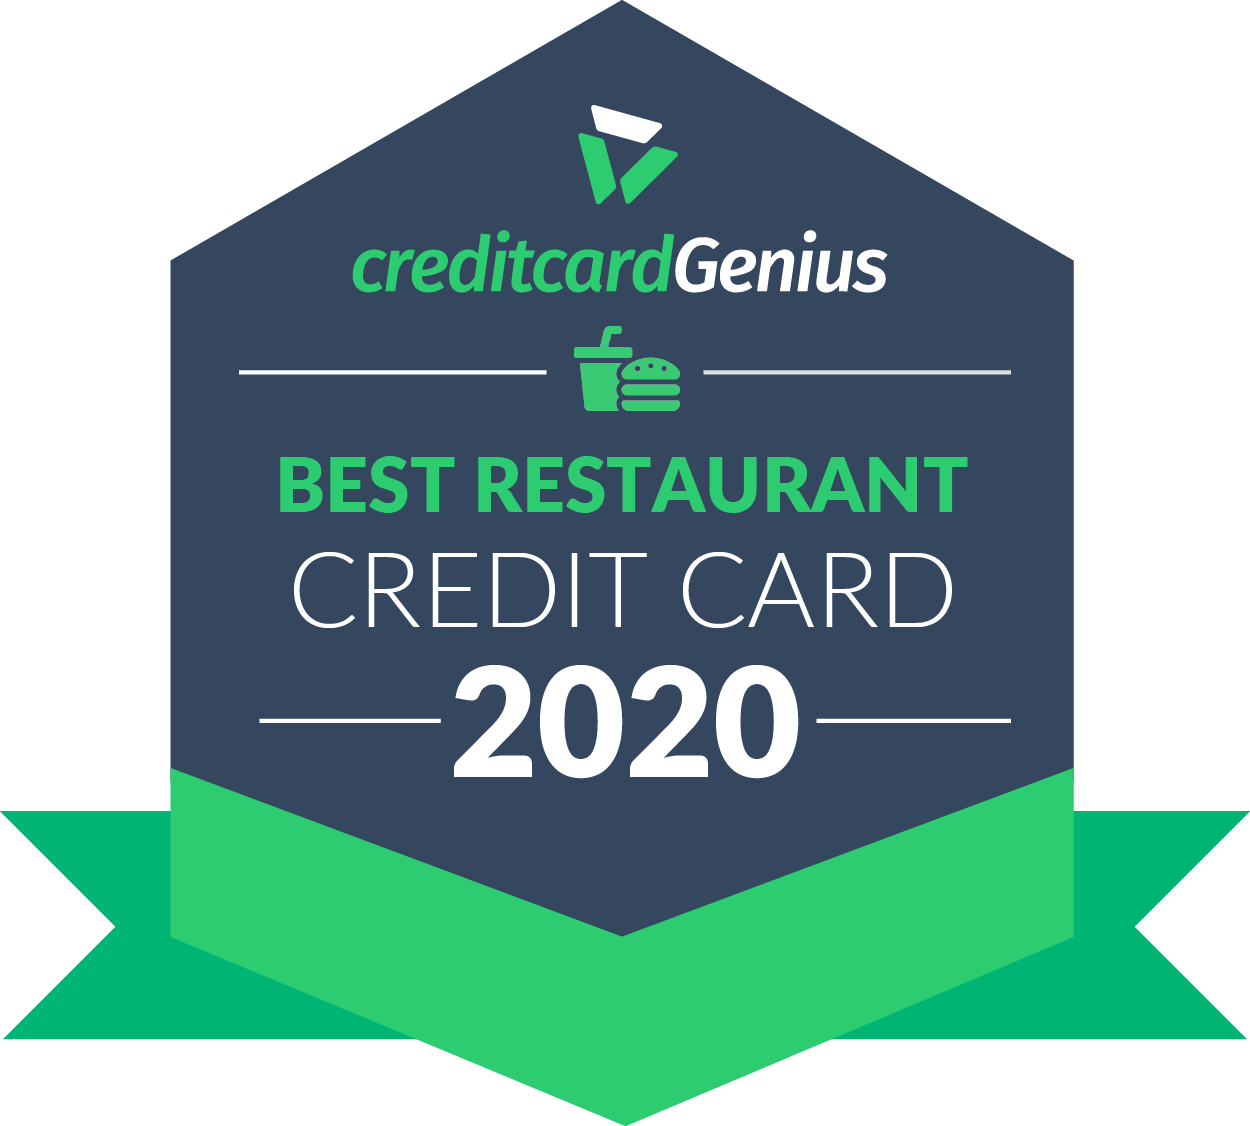 Best restaurant credit card for 2020 award seal